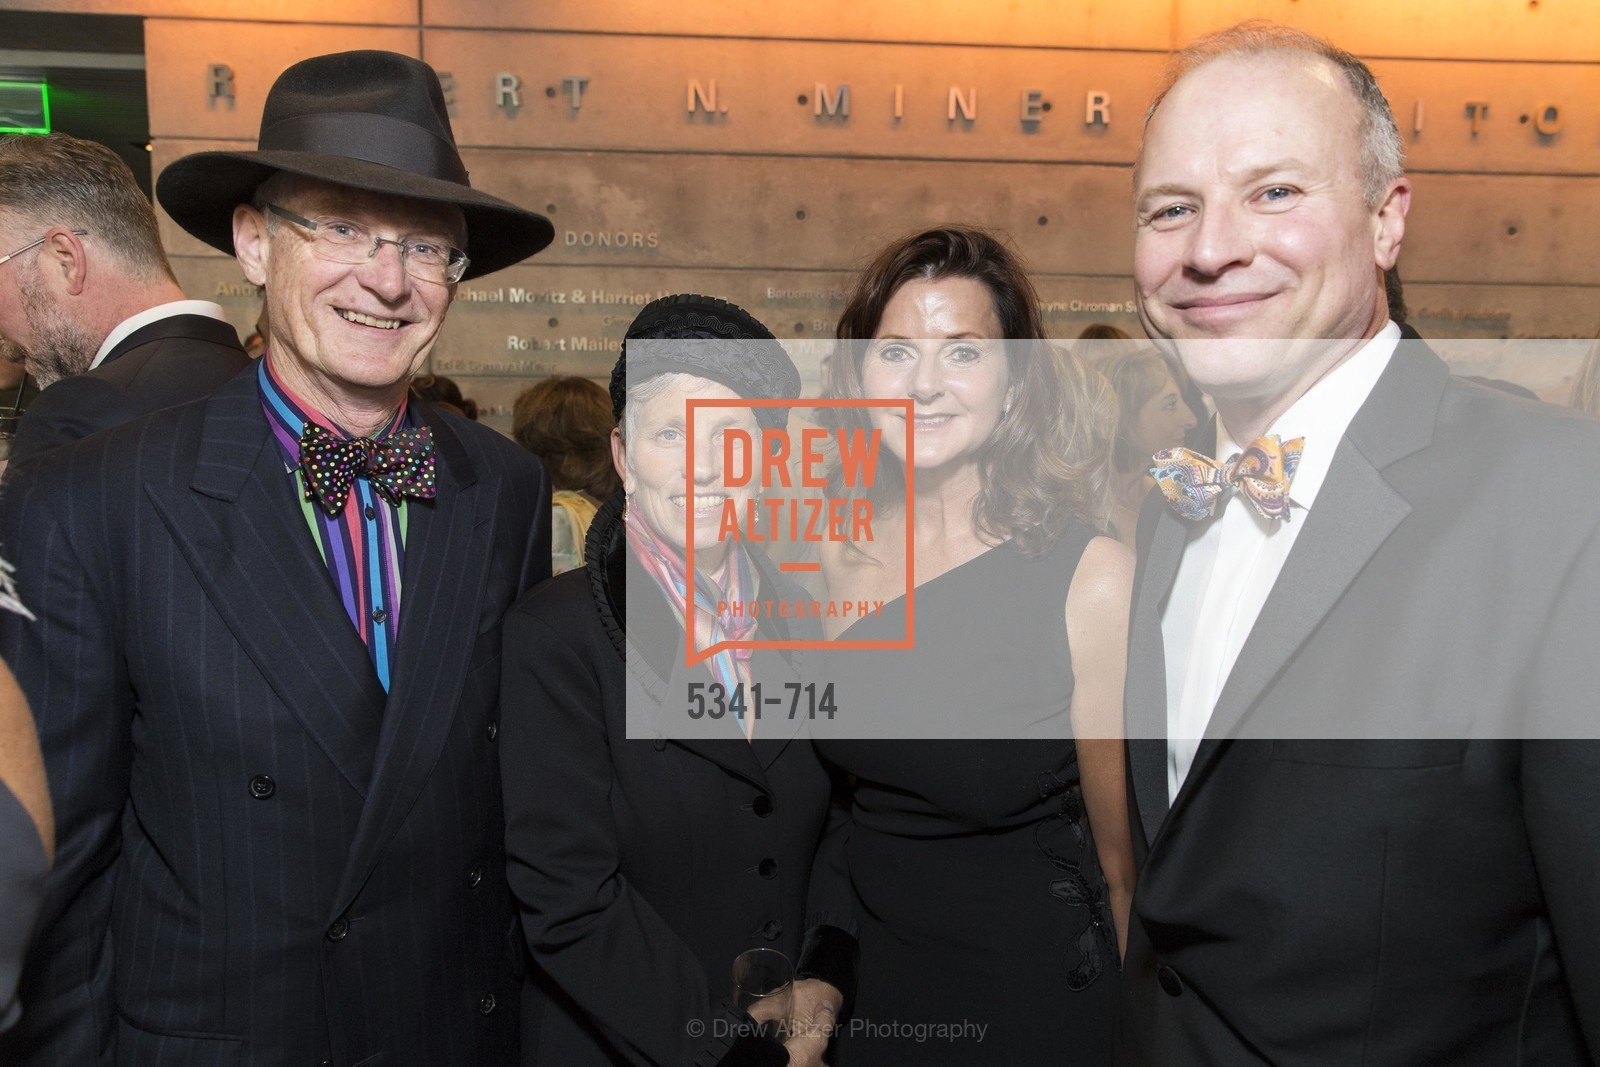 Terry Berkemeier, Lori Lerner, Diane Mailey, Don Derheim, SFJAZZ Gala 2015 Honors Joni Mitchell with Lifetime Achievement Award, US, May 9th, 2015,Drew Altizer, Drew Altizer Photography, full-service agency, private events, San Francisco photographer, photographer california